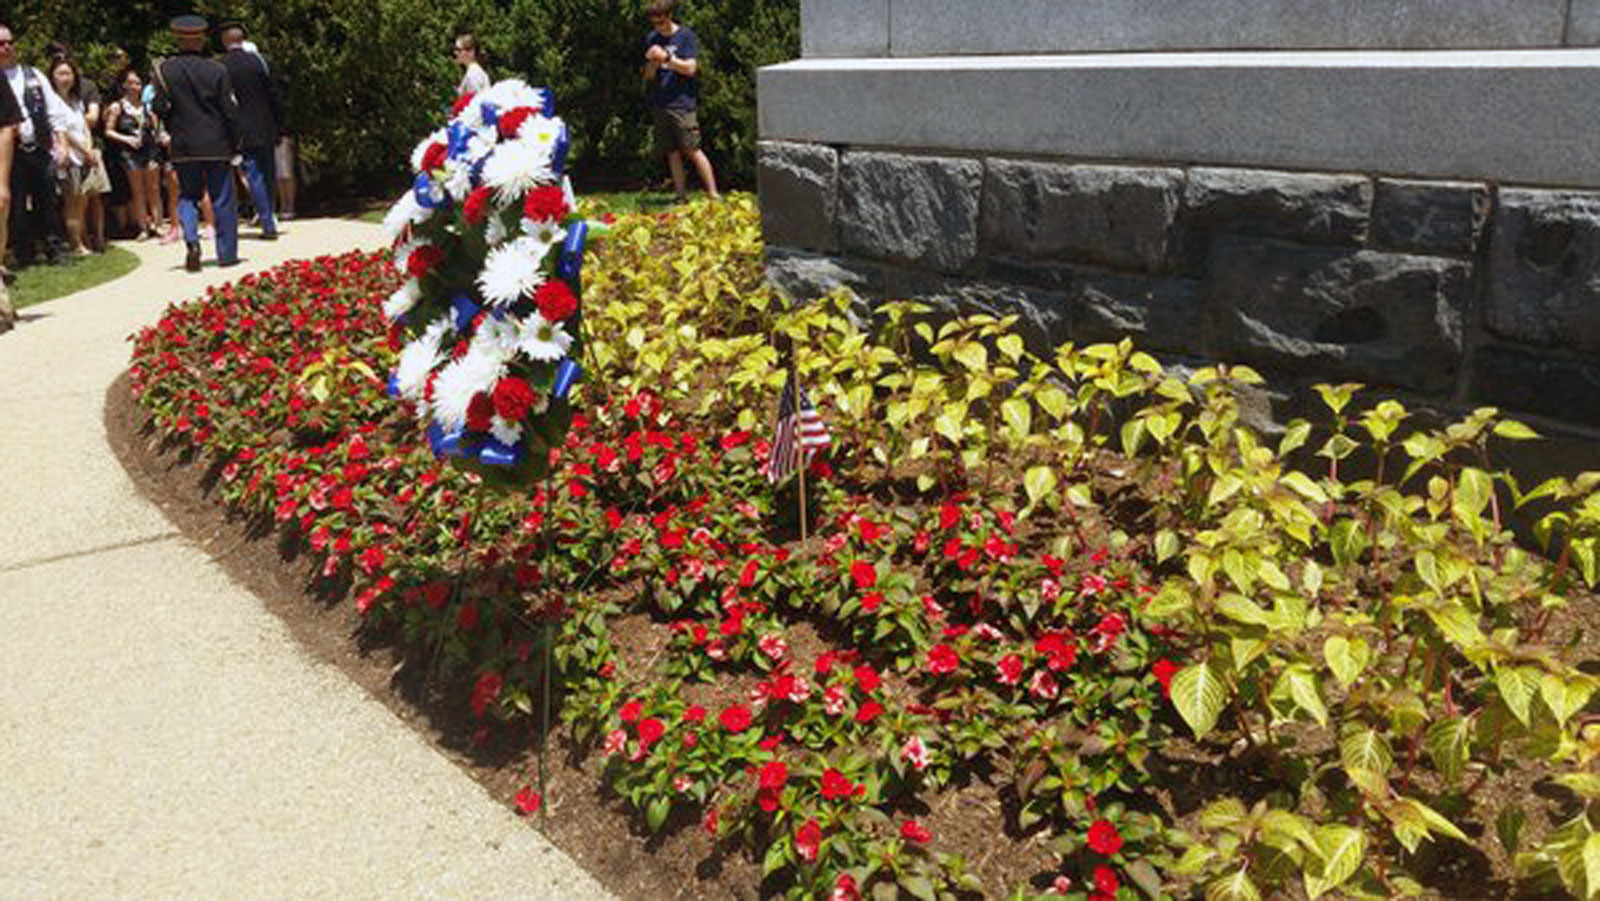 A wreath is laid for unknown Civil War soldiers. (WTOP/Allison Keyes)